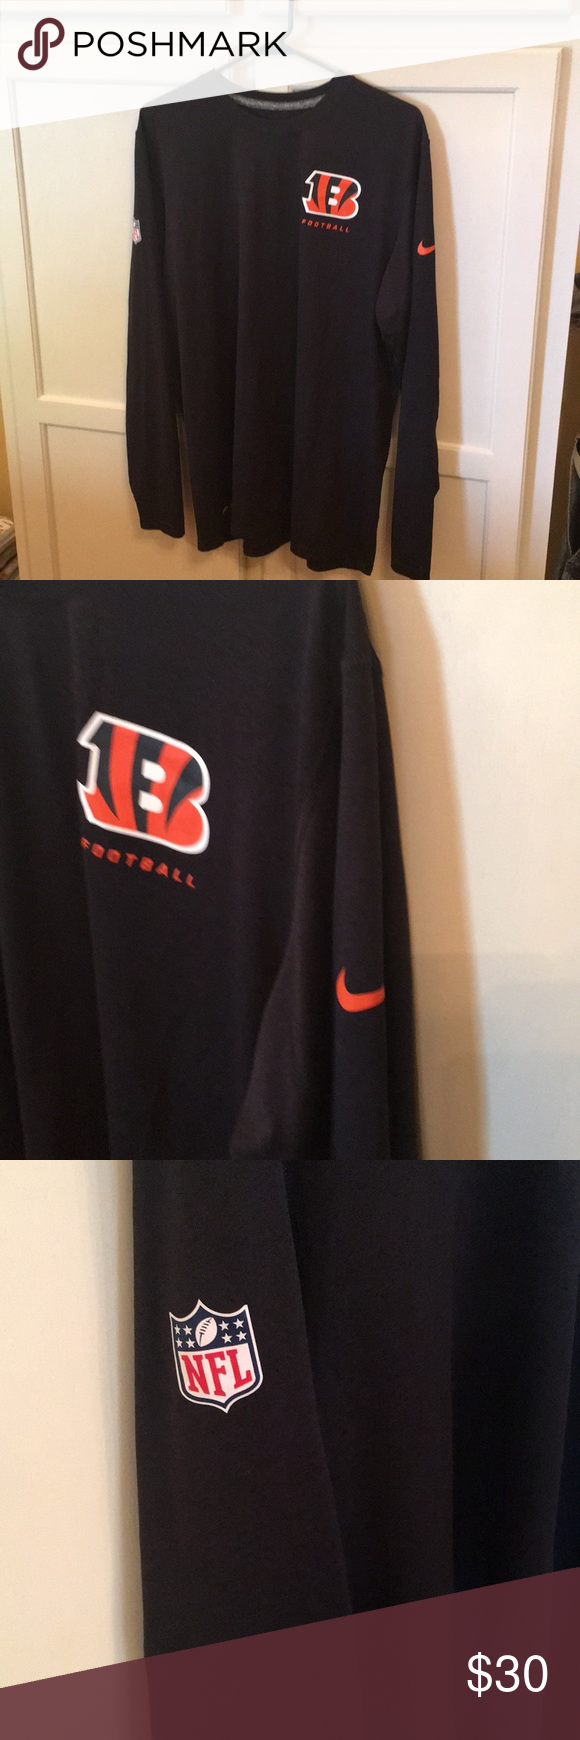 cfc925a3 Nike Bengals NFL Dri Fit Top Size Large | Simple shirts, Nike logo ...